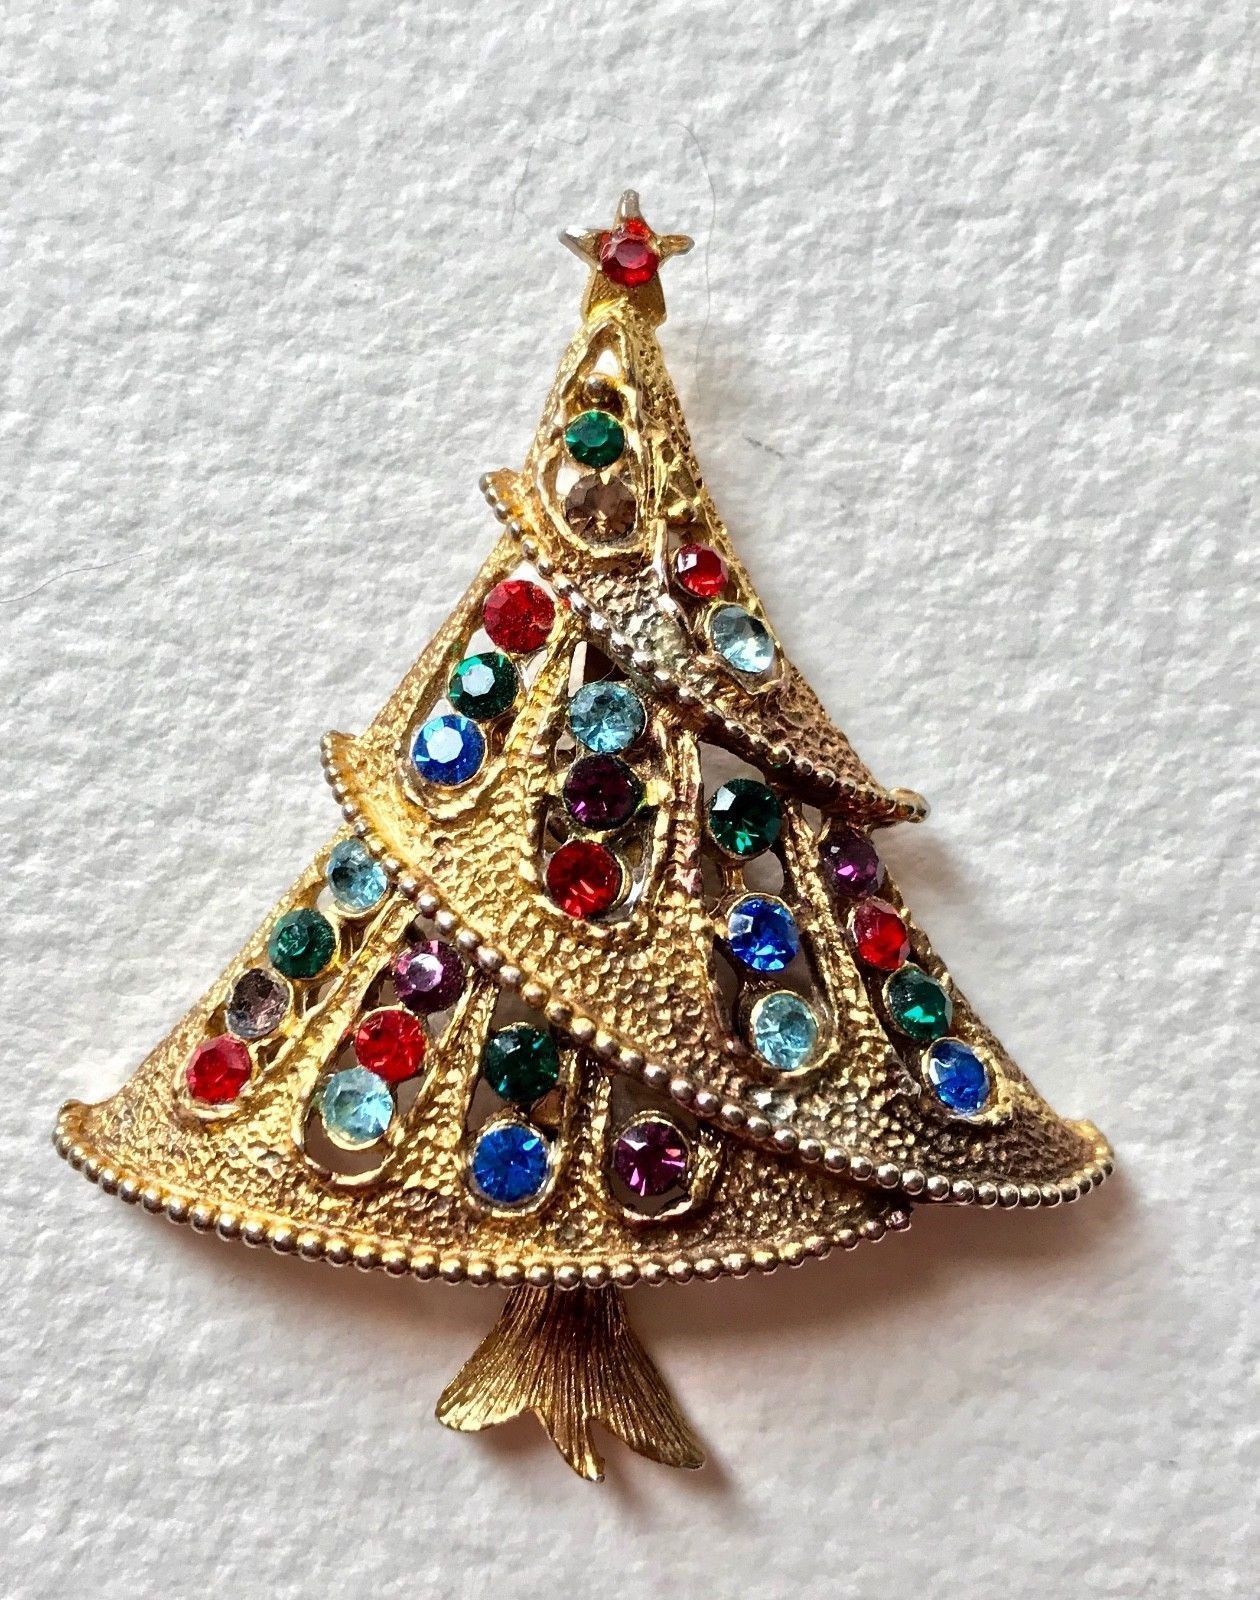 63f4e67a5 Vintage Rare JJ Jonette Signed Christmas Tree Pin BOOK PIECE Holiday Brooch  Gold Tone Multi Rhinestones Women's Estate Costume Jewelry by  VintagePolice4U on ...